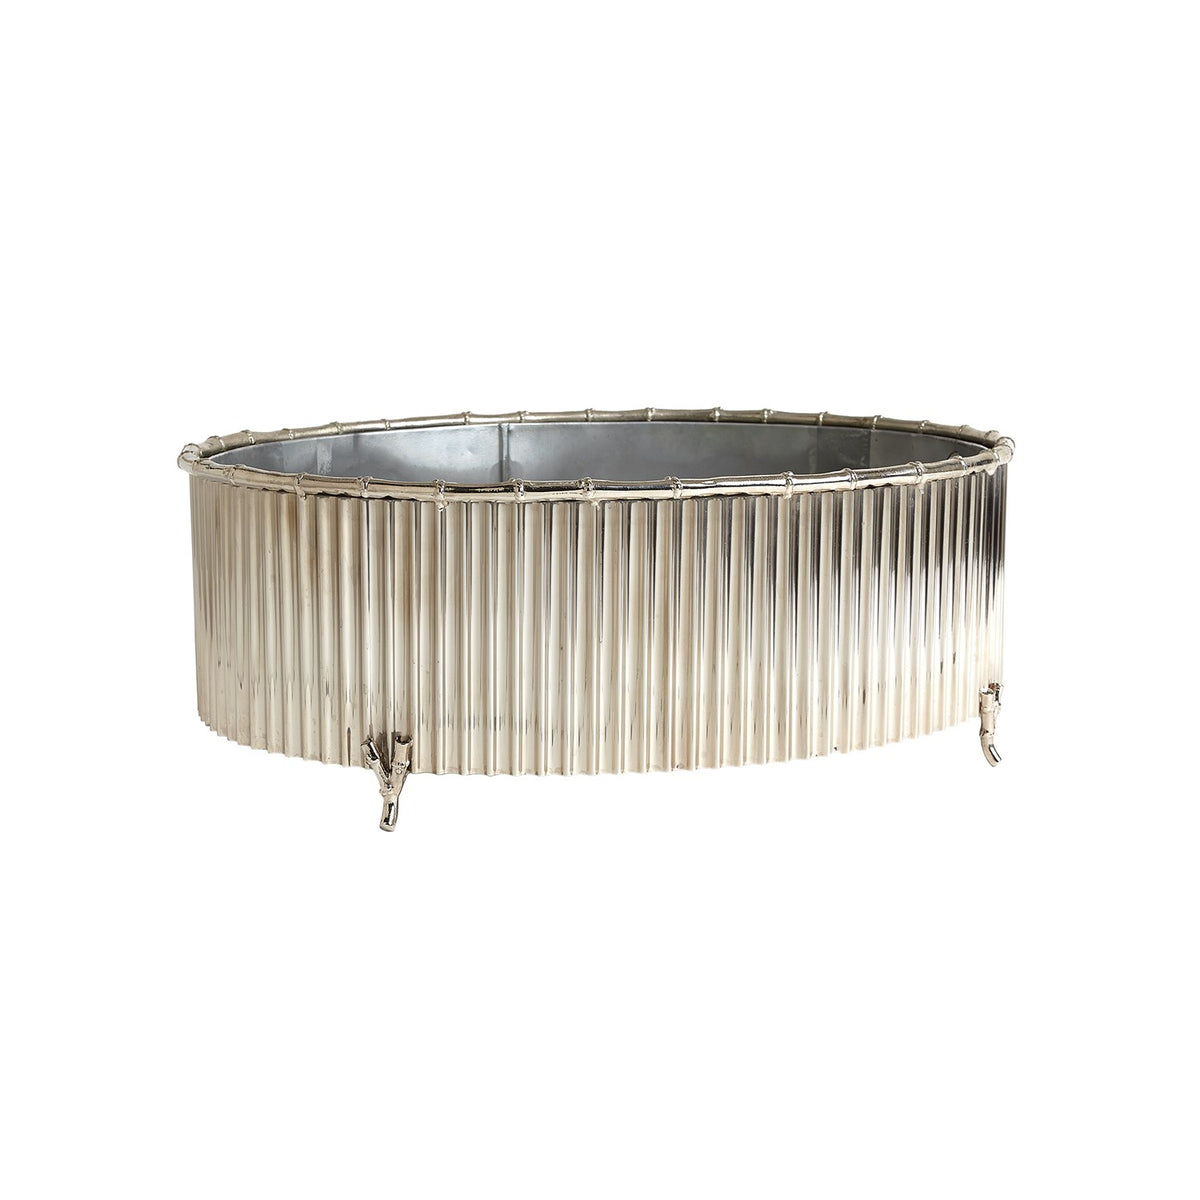 Corrugated Bamboo Cachepot, Nickel